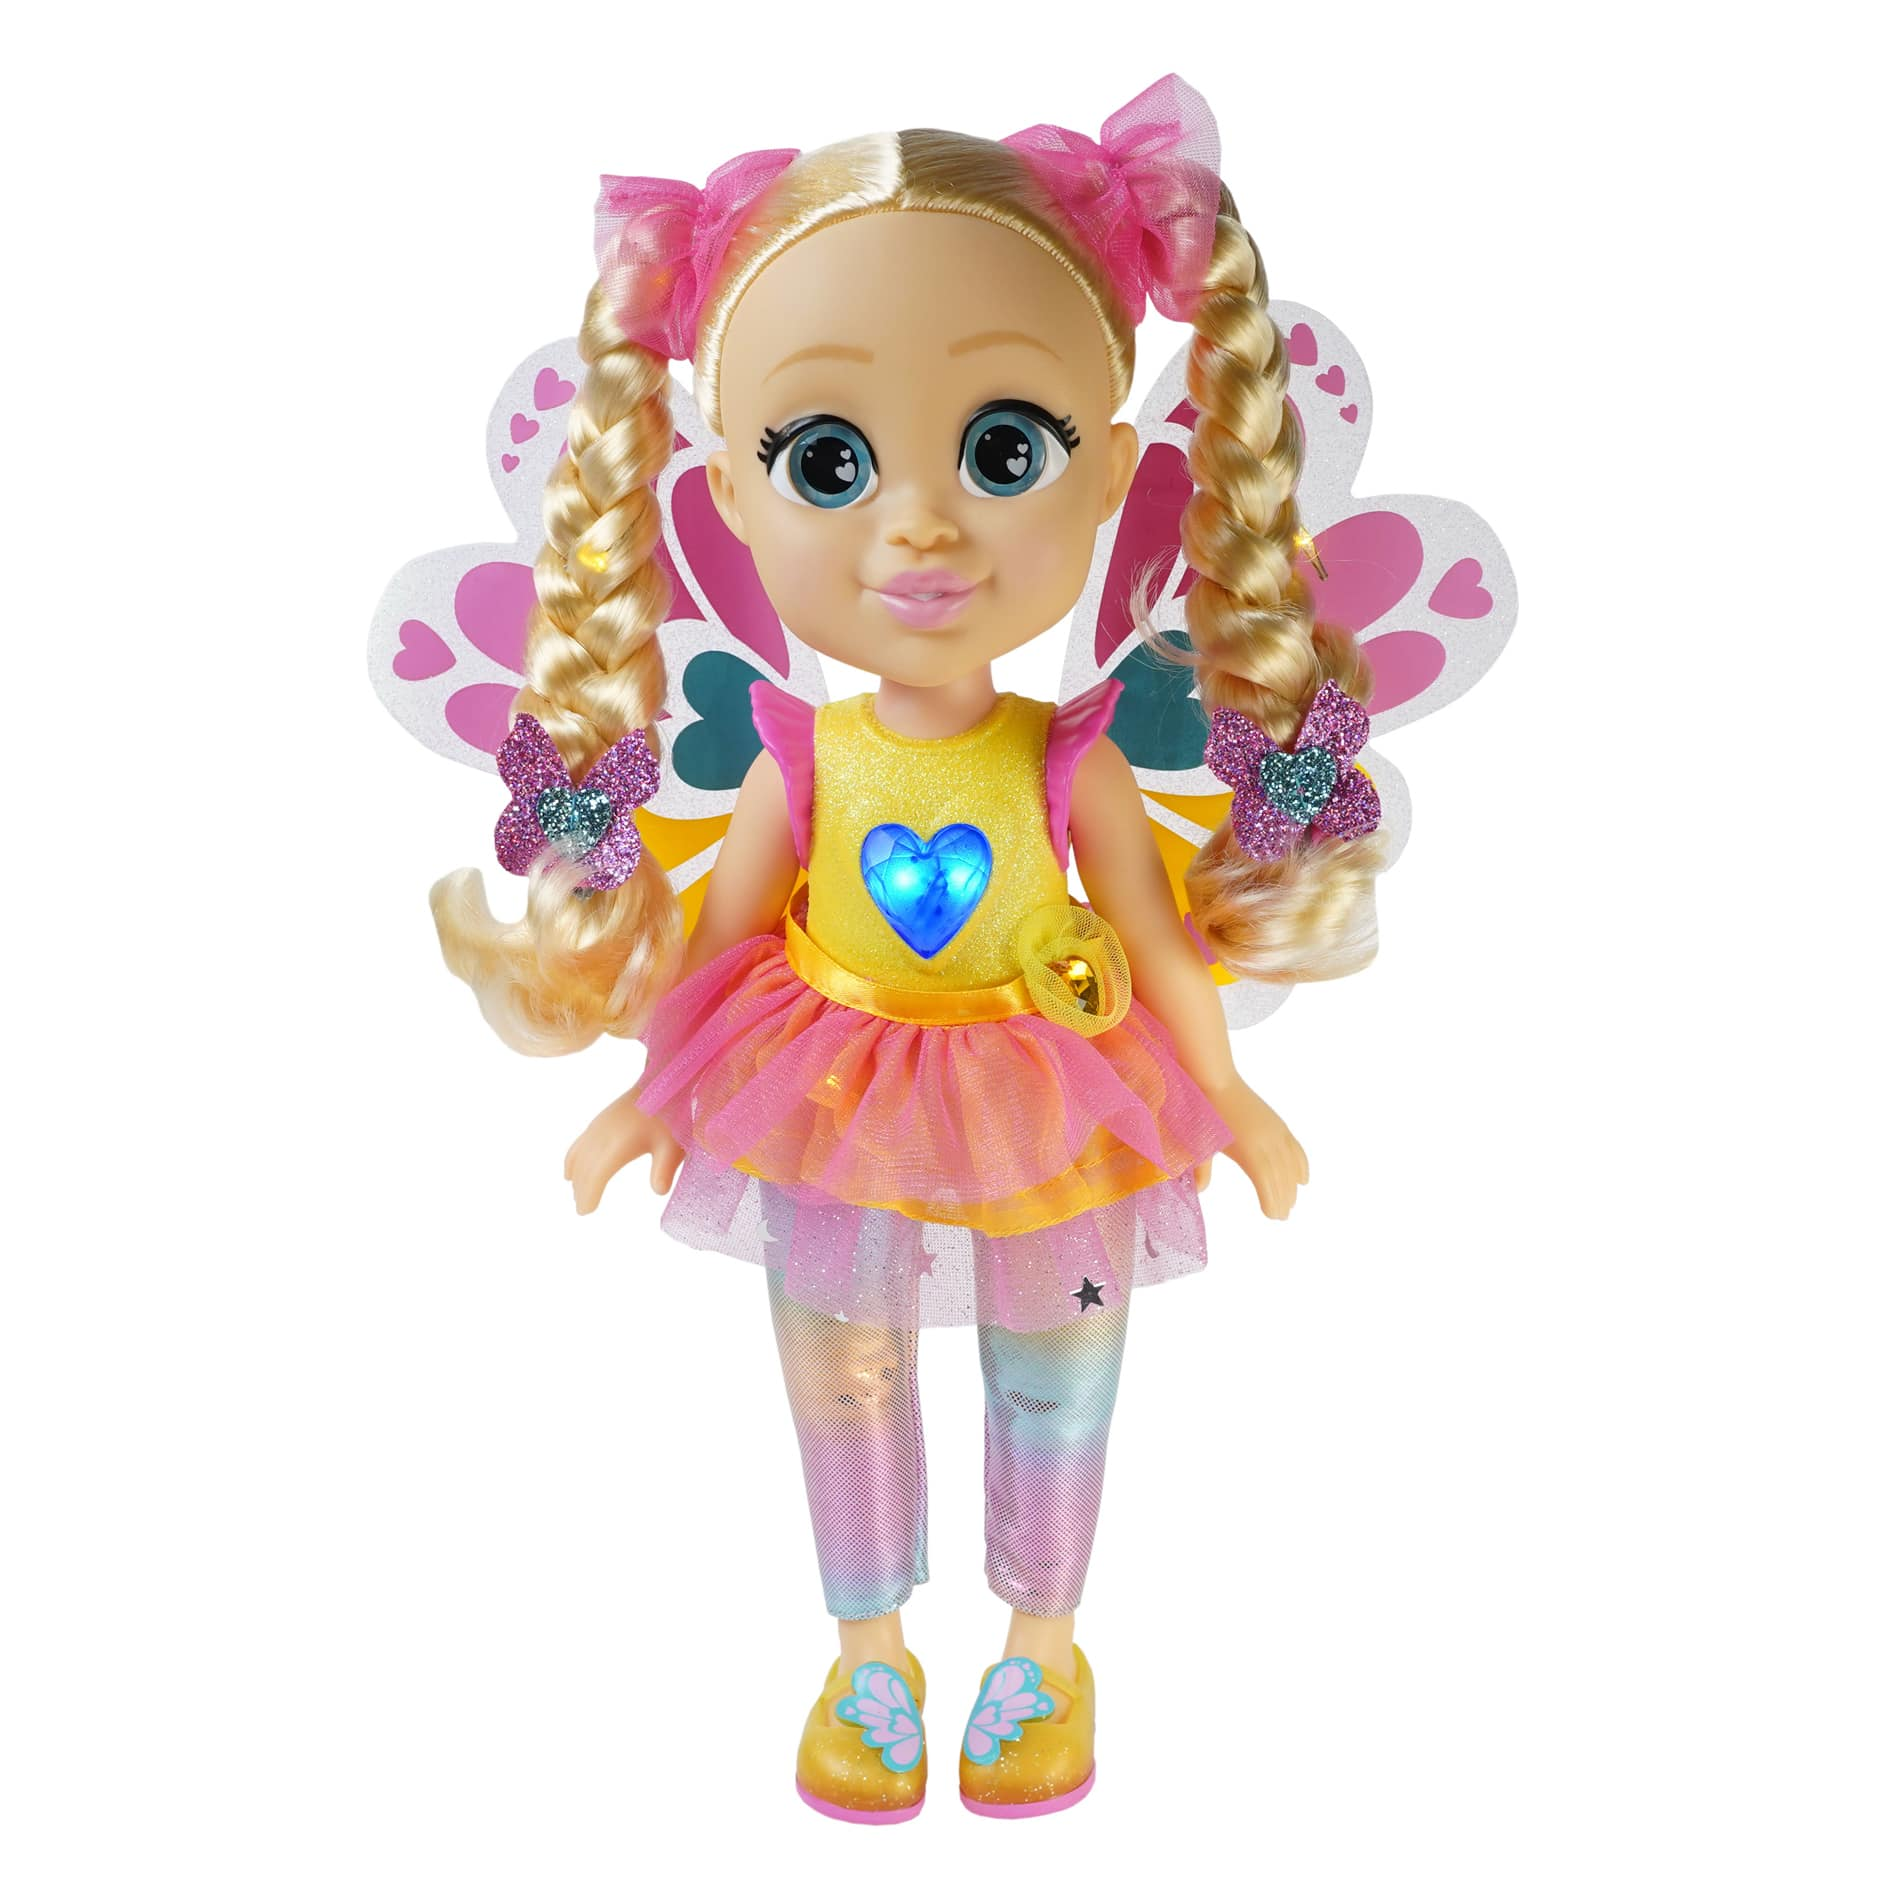 Love Diana - Light up Fairy Feature Doll Pack (79848)